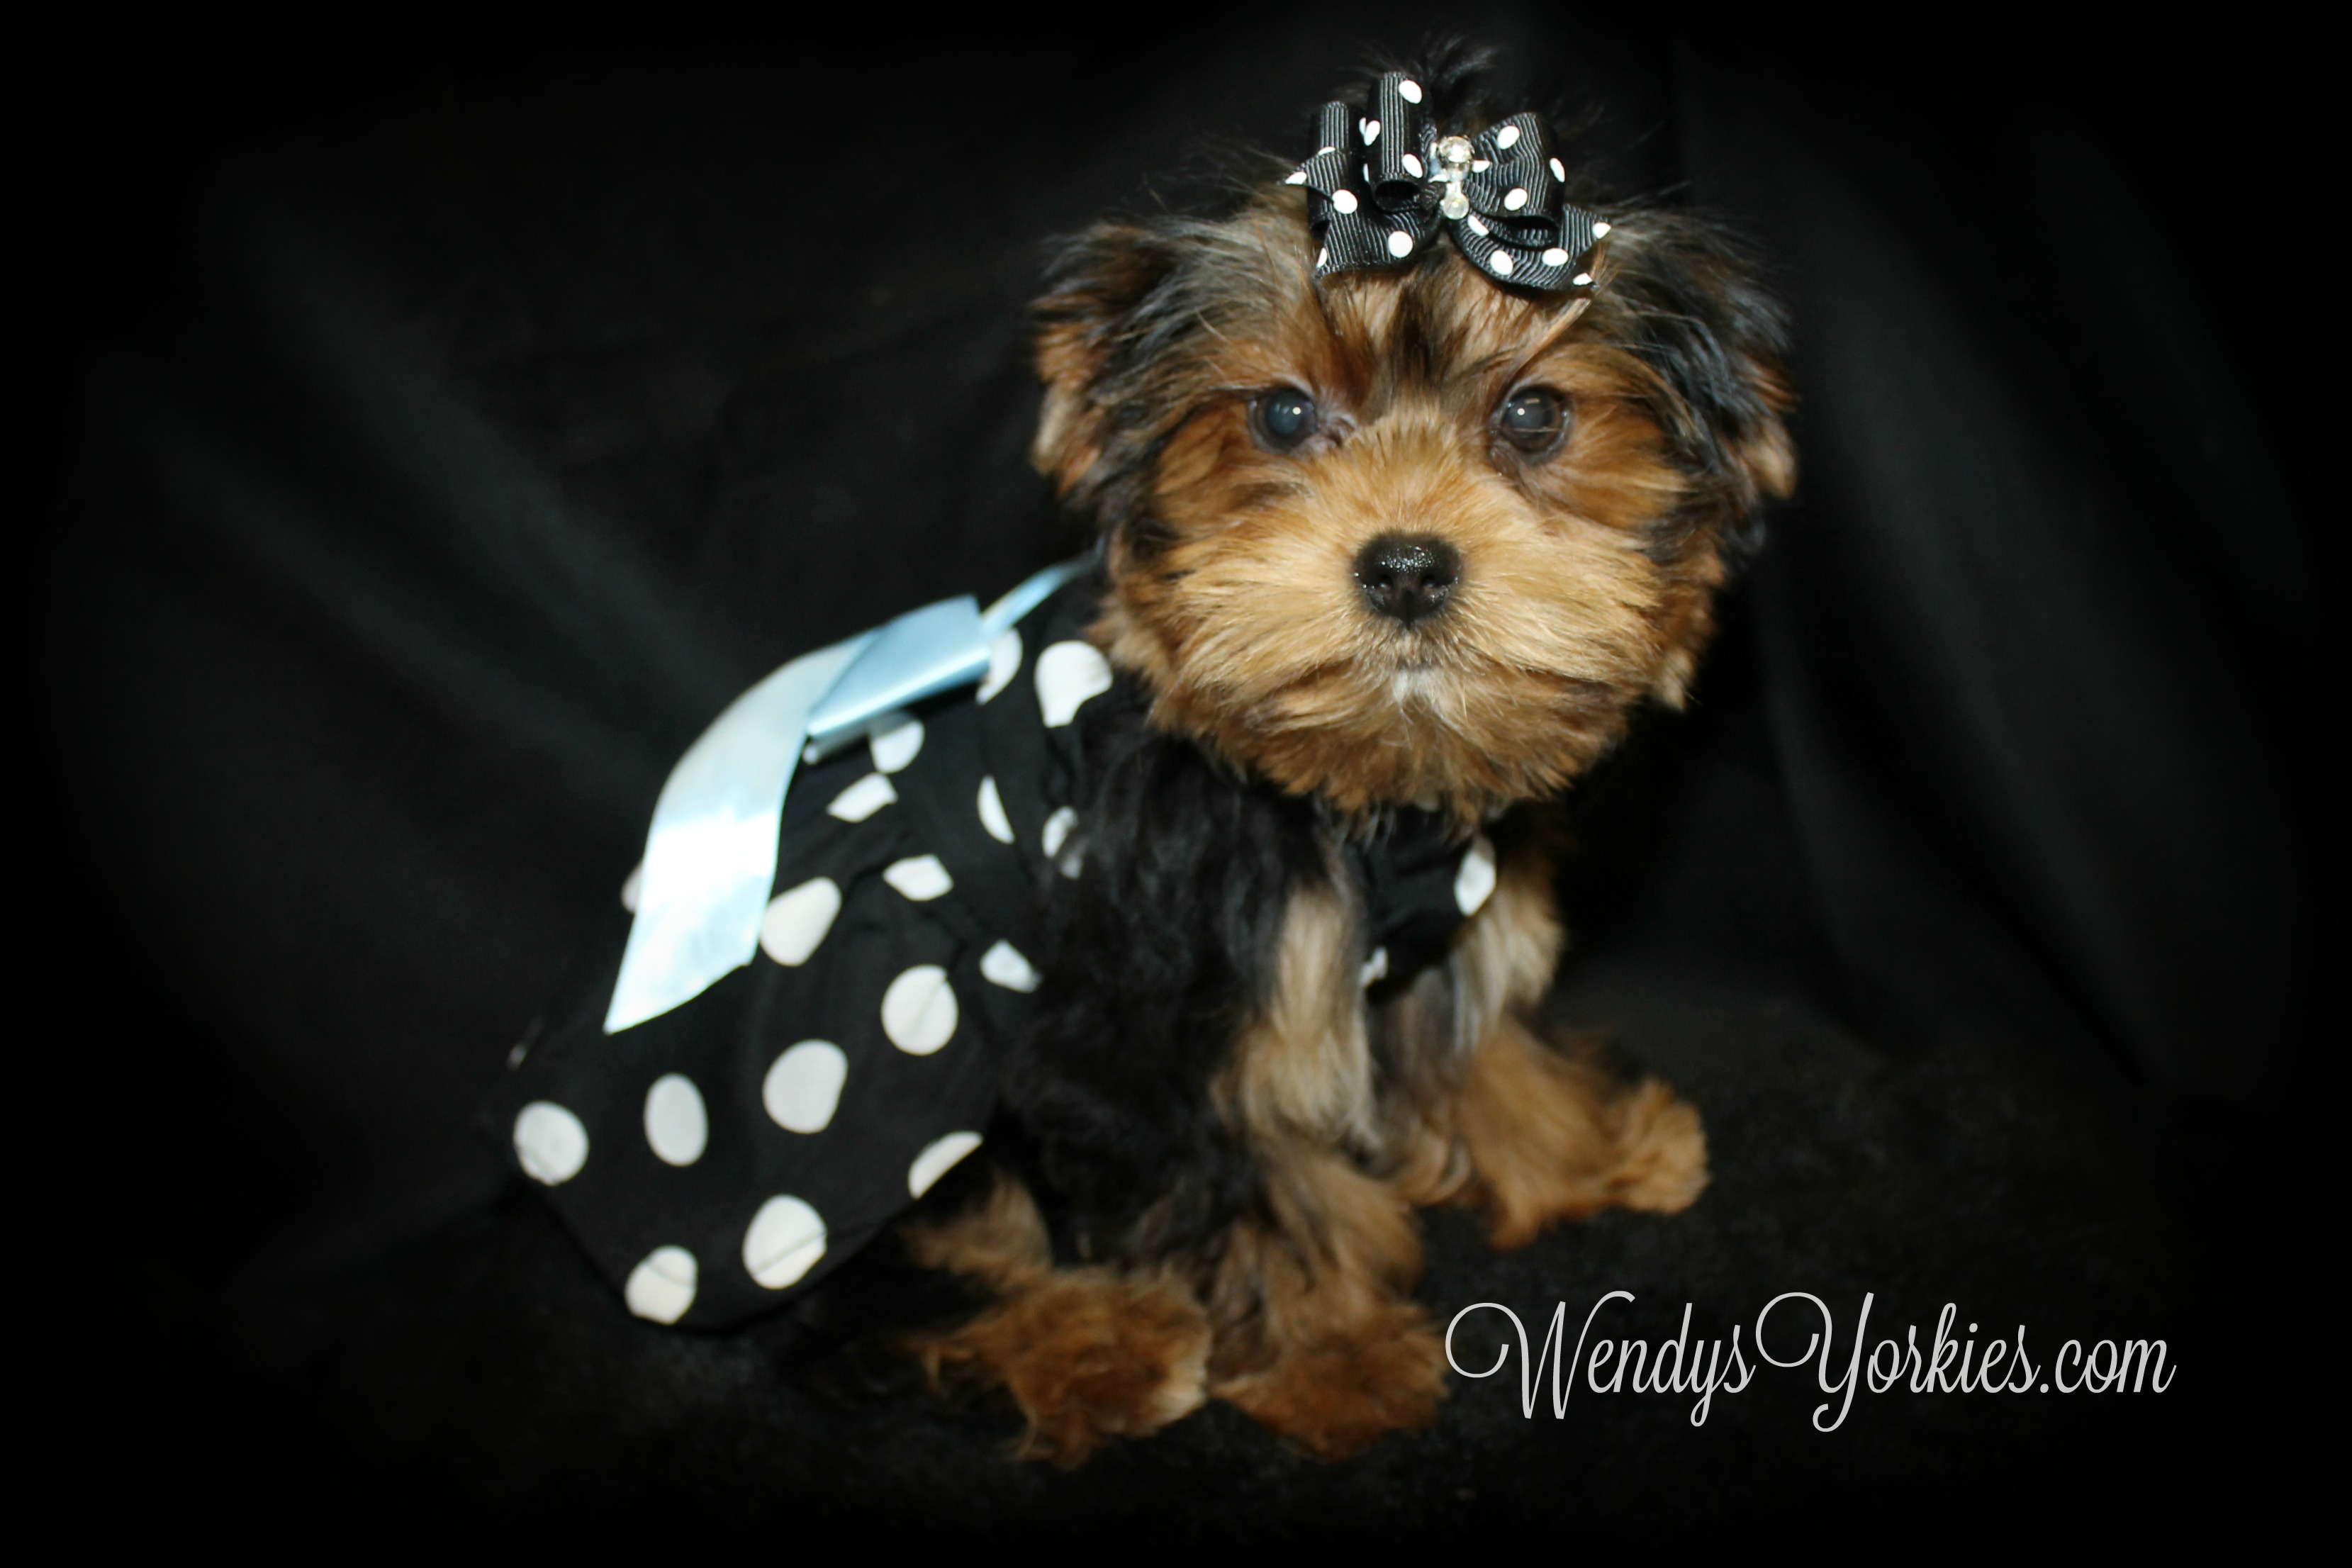 Teacup Yorkie puppies for sale, WendysYorkies.com, PhoebeDixie